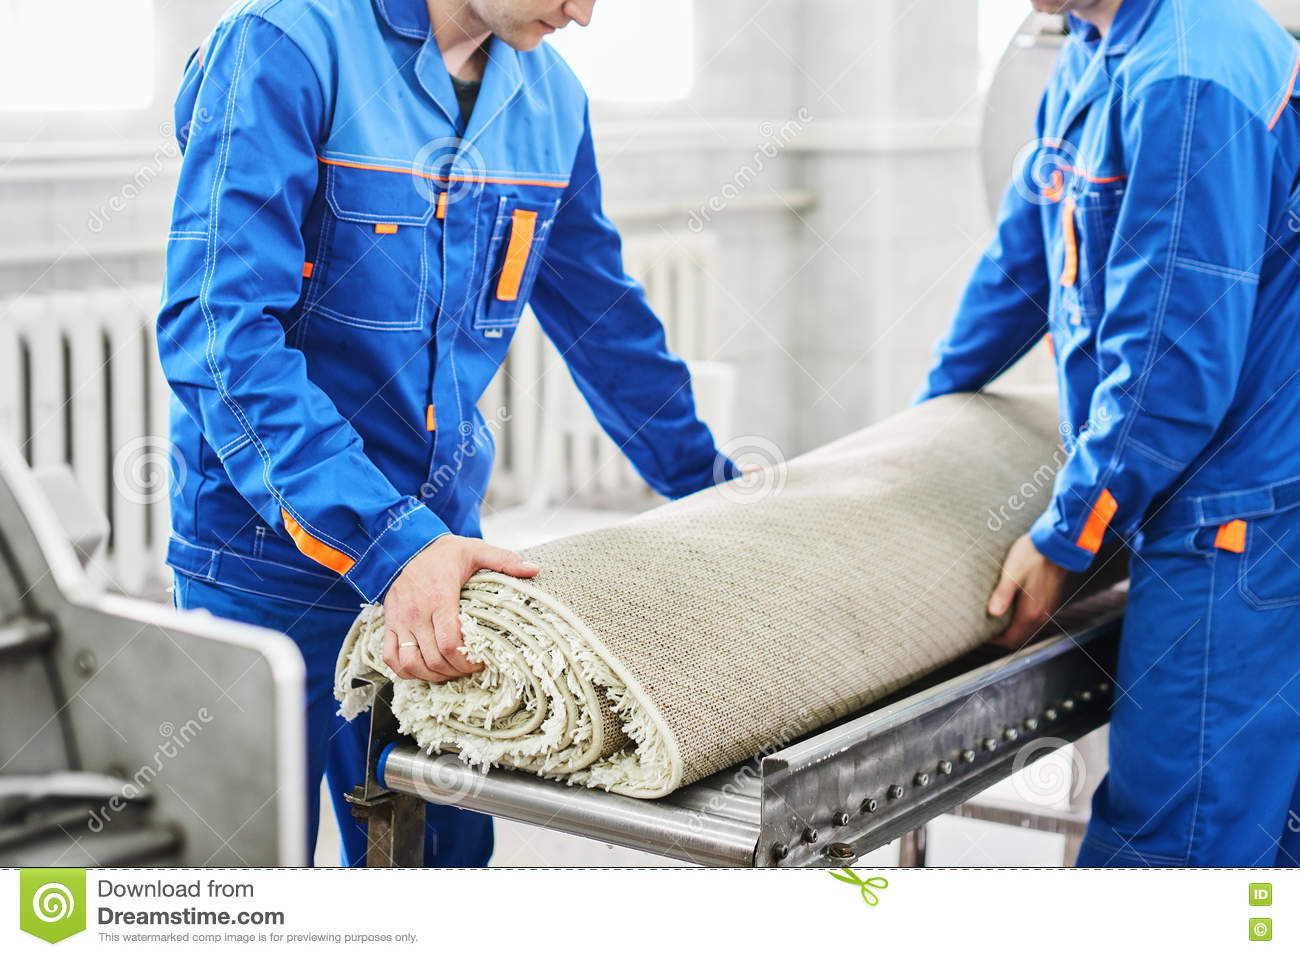 Men workers cleaning get carpet from an automatic washing machine and carry it in the clothes dryer